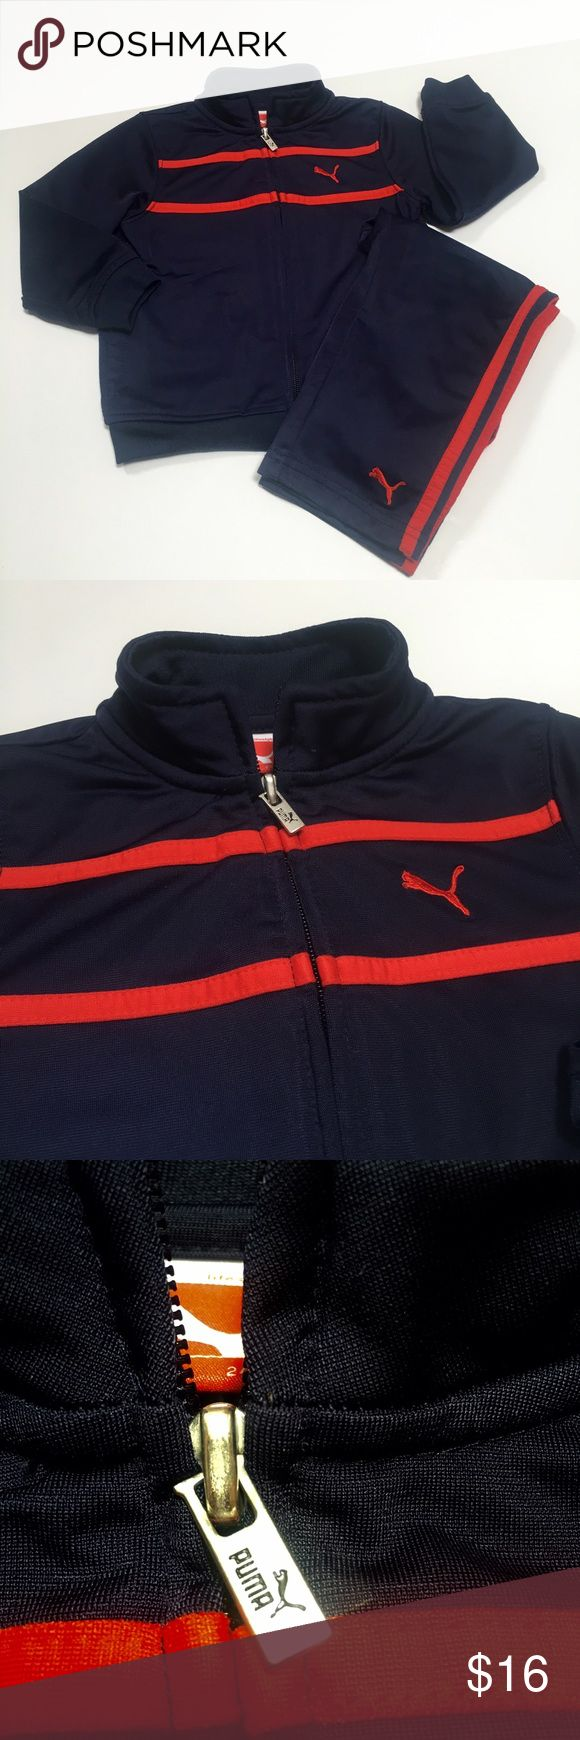 🎉BOGO🎉Navy and red puma tracksuit Navy and red puma tracksuit. Jacket zips all the way and has pockets. Pants are elastic waist with emblem on cuff and stripes up the legs. EUC. Puma Matching Sets